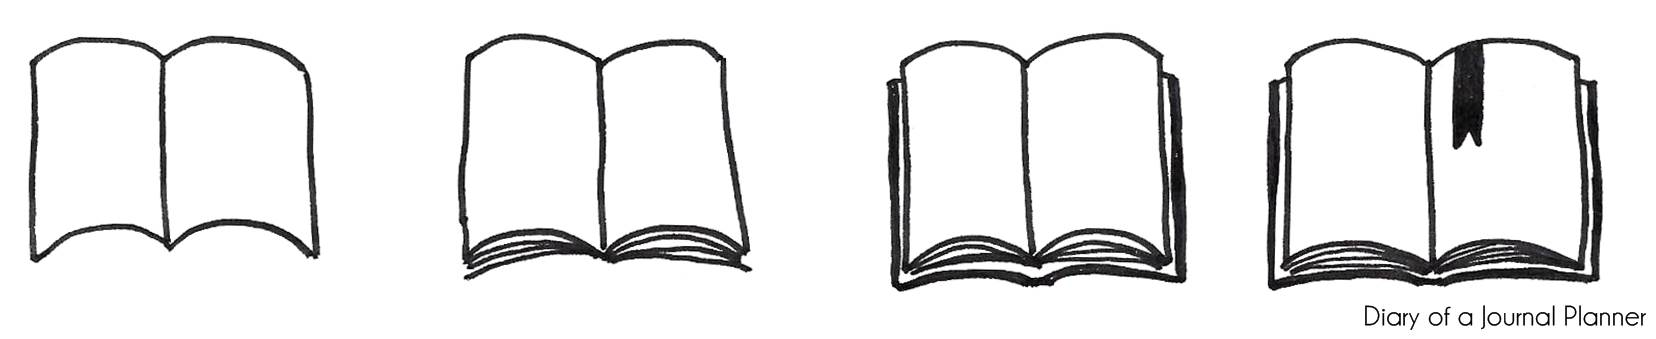 How To Draw A Book - Step By Step Tutorial For Beginners